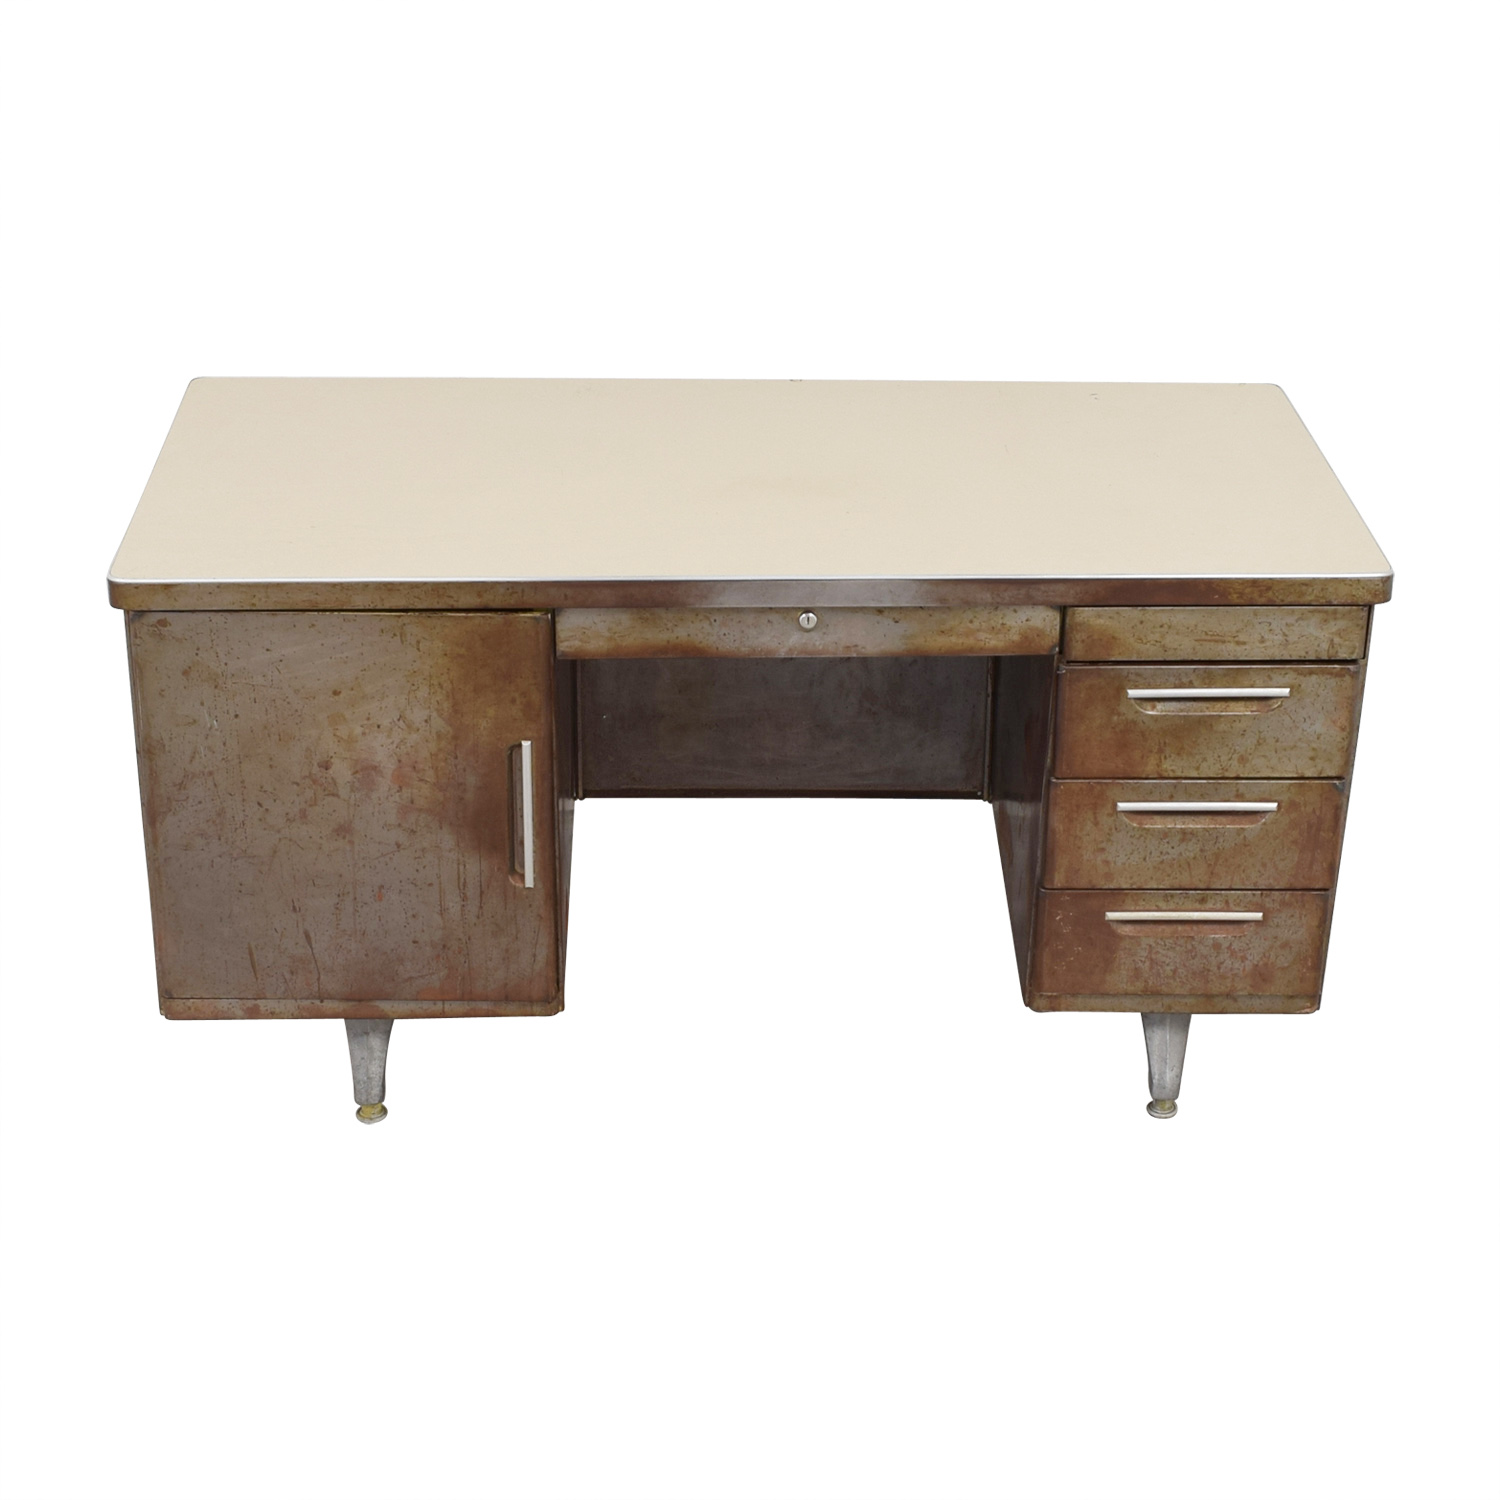 Shaw Walker Shaw Walker Rustic Metal Desk second hand